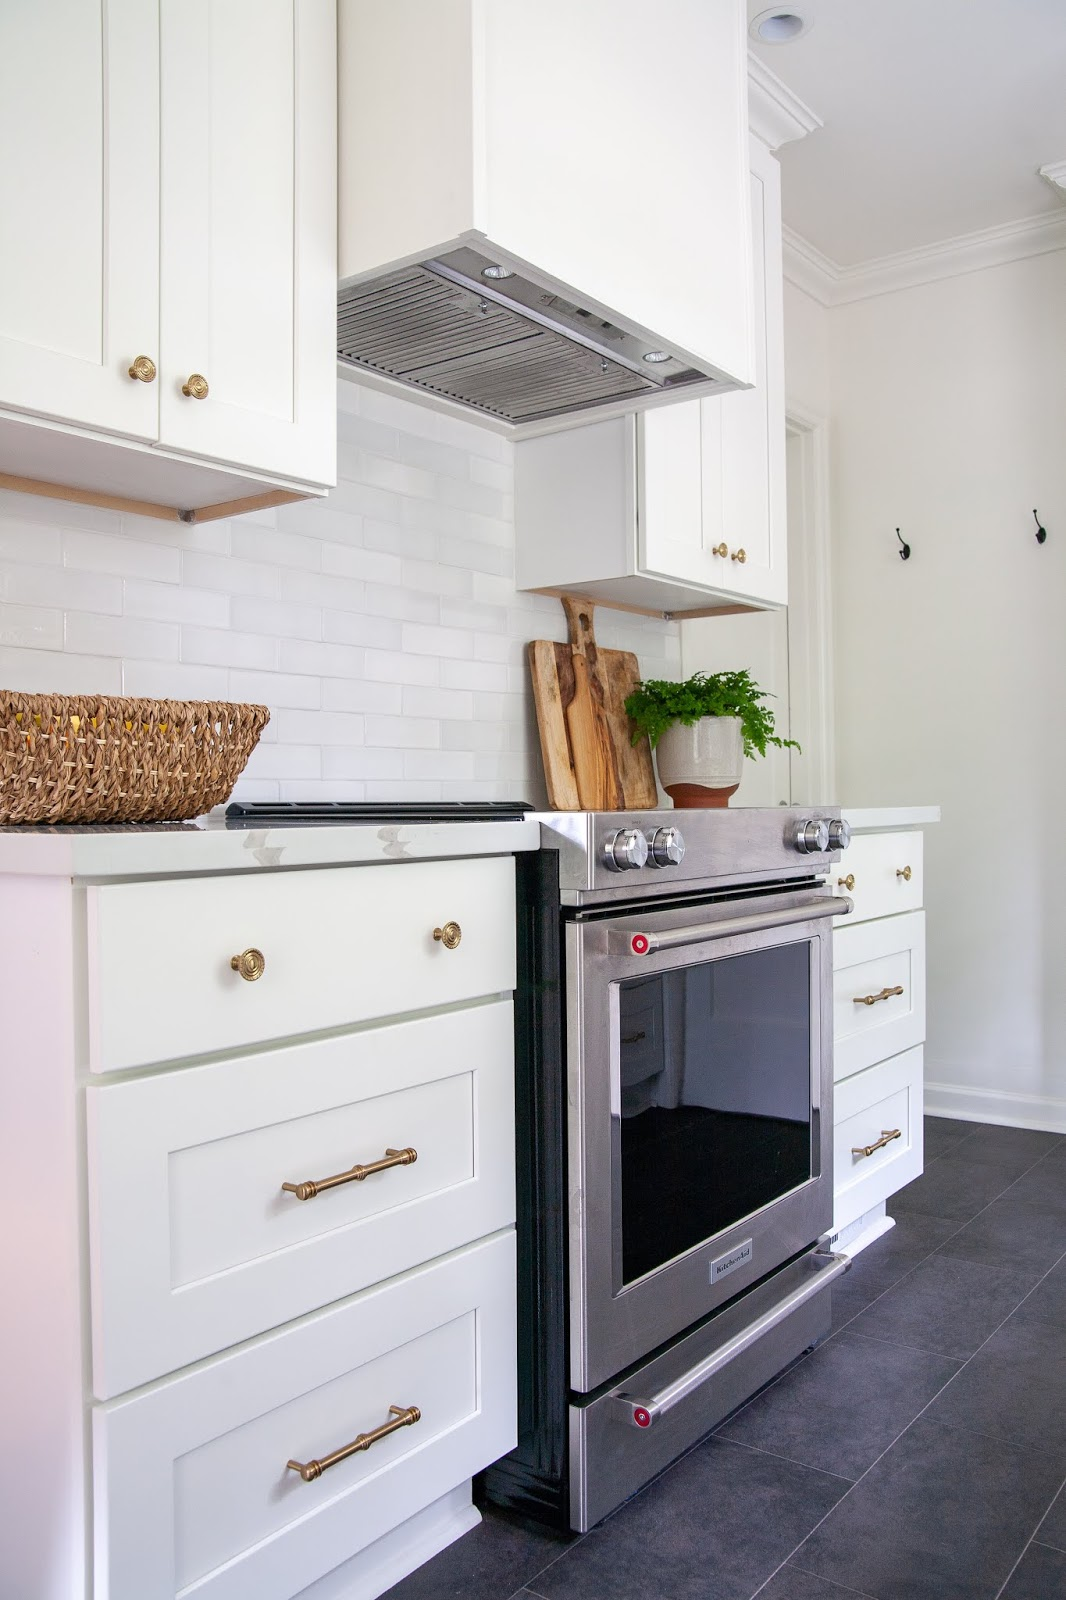 kitchen reno with sears outlet